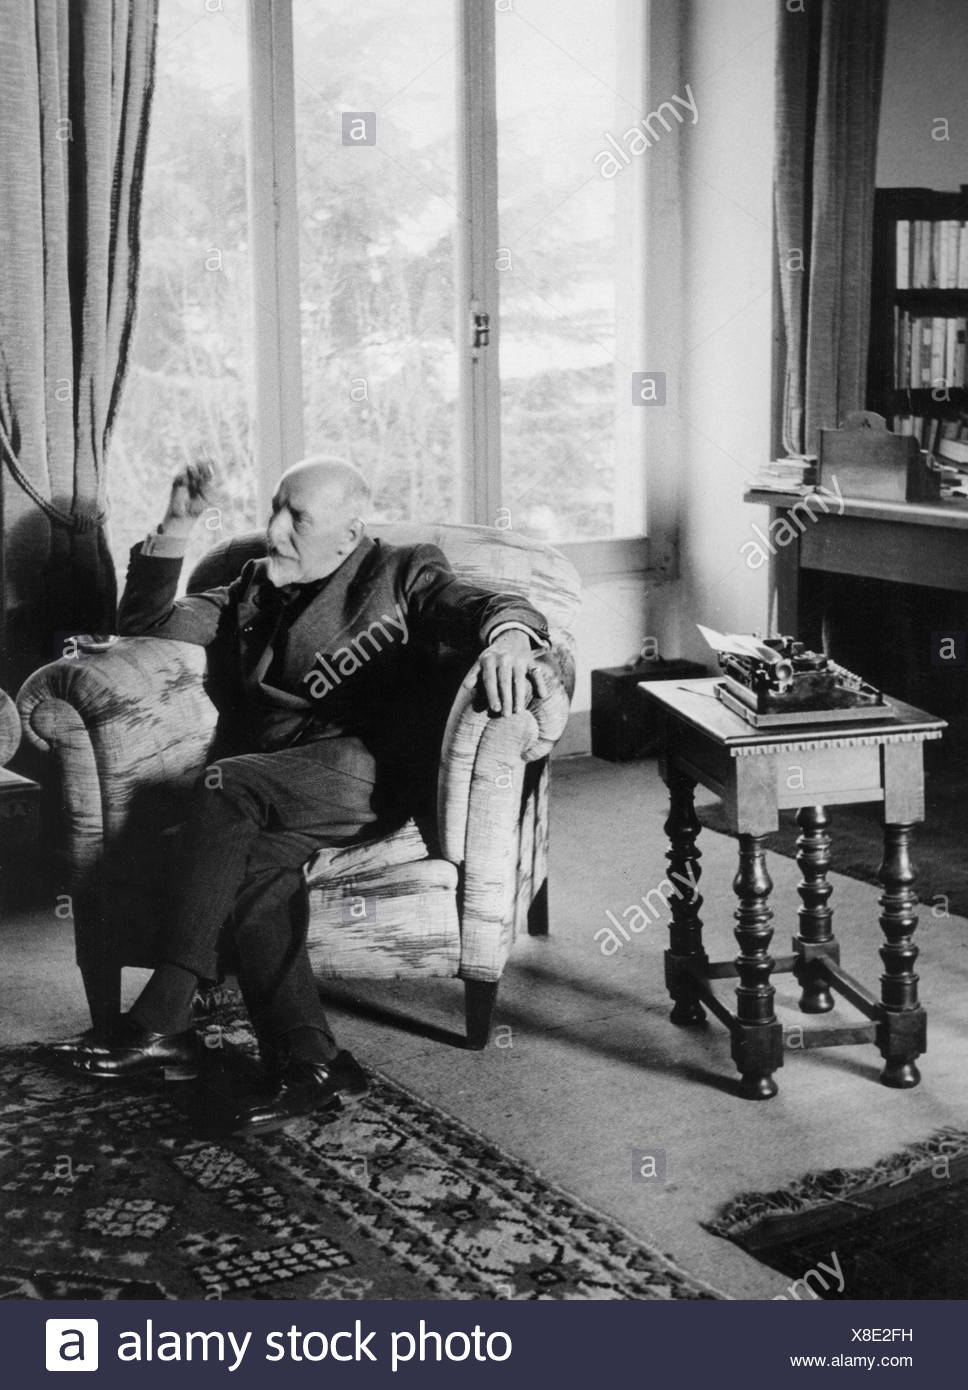 Pirandello, Luigi, 28.6.1867 - 10.12.1936, Italian author / writer (poet), full length, in his working room, 1930s, Additional-Rights-Clearances-NA - Stock Image